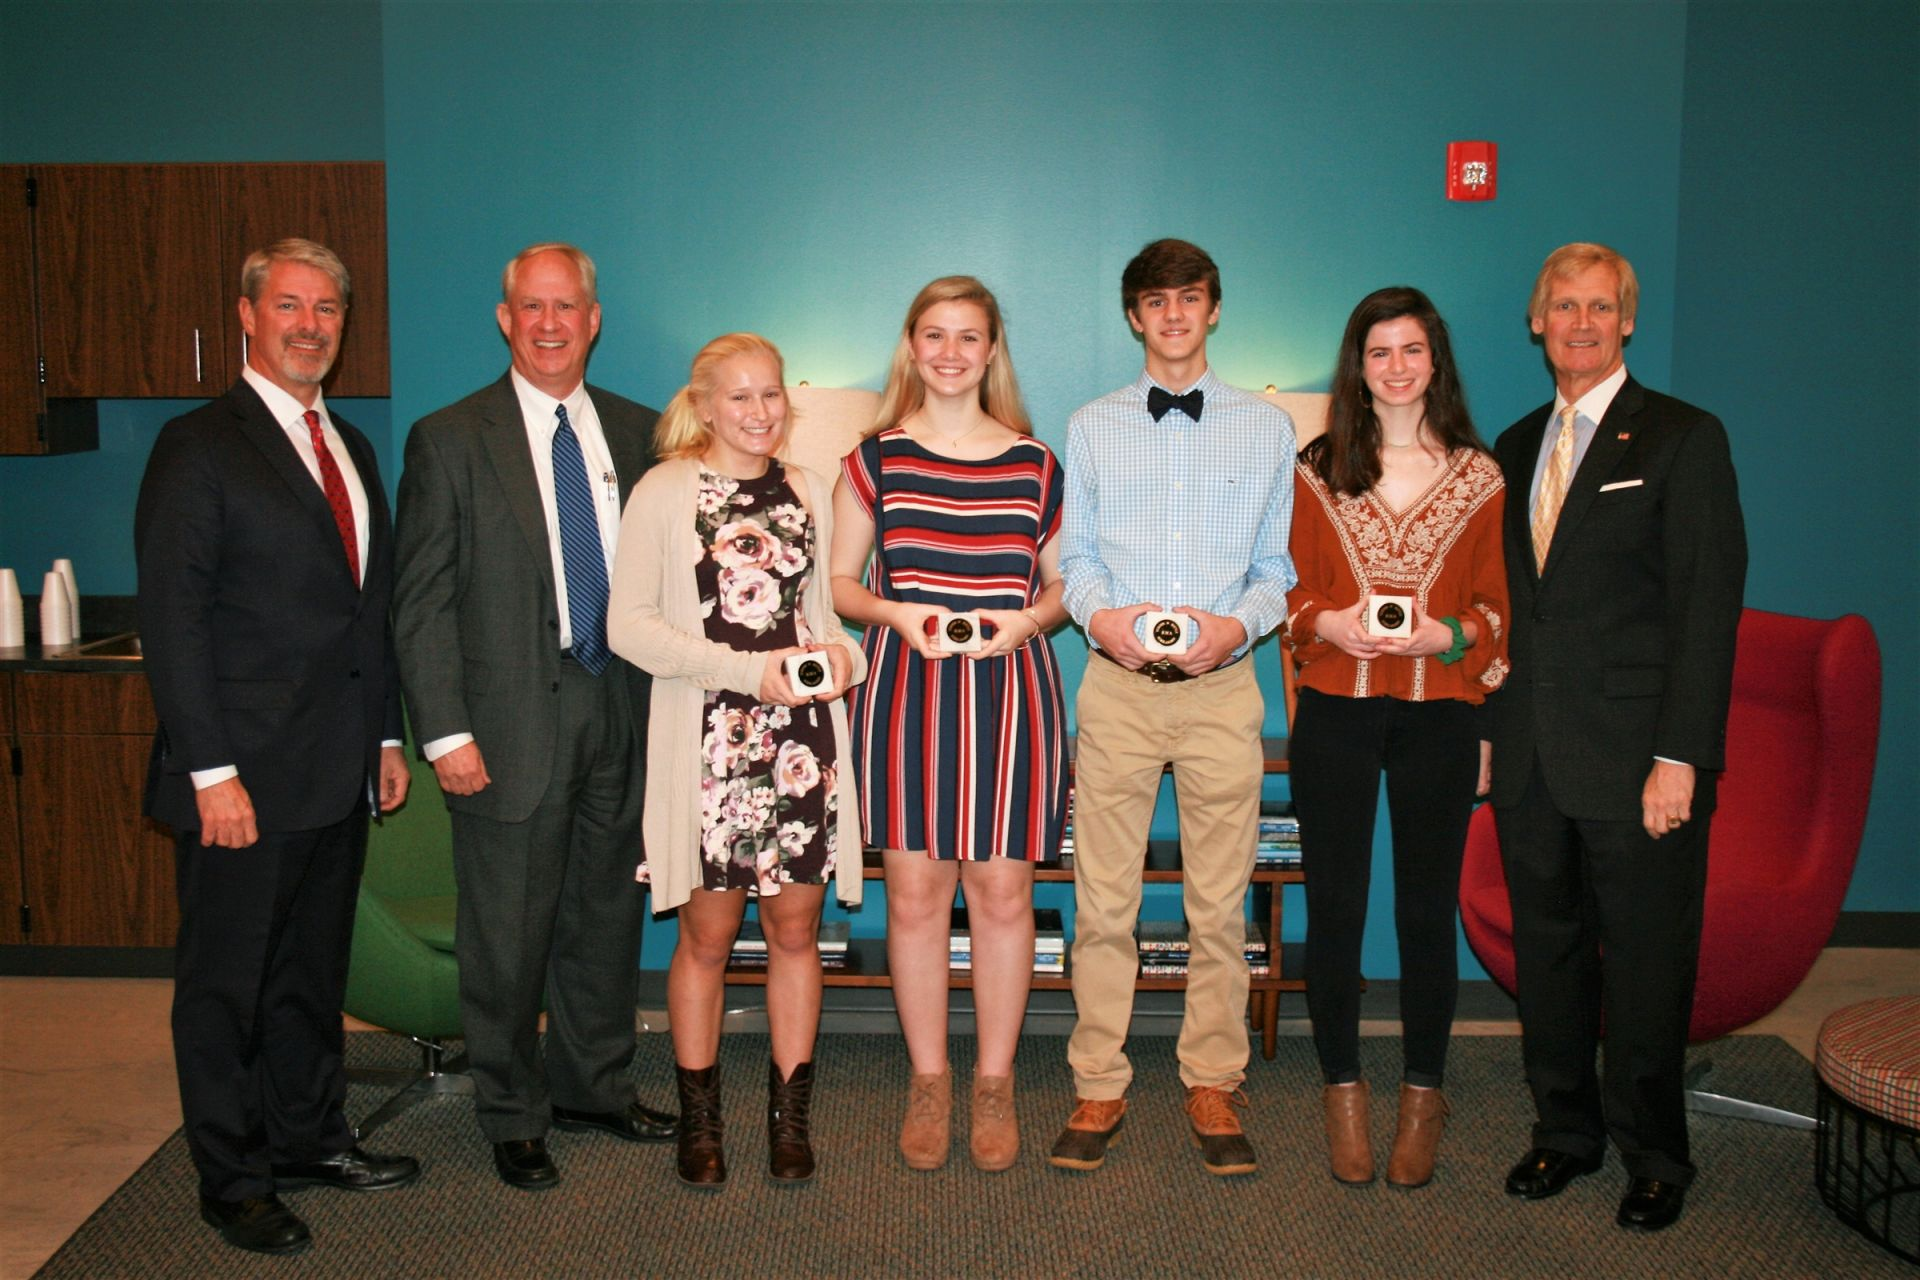 Trustees of the Turner W. Battle Scholarship Jeffrey Batts, Richard Battle, and David Warren, stand with the scholarship recipients.  The 2018-2019 recipients are Haley McCall, Emory Pittman, Colby Freeman, and Georgia Morris  (L to R).